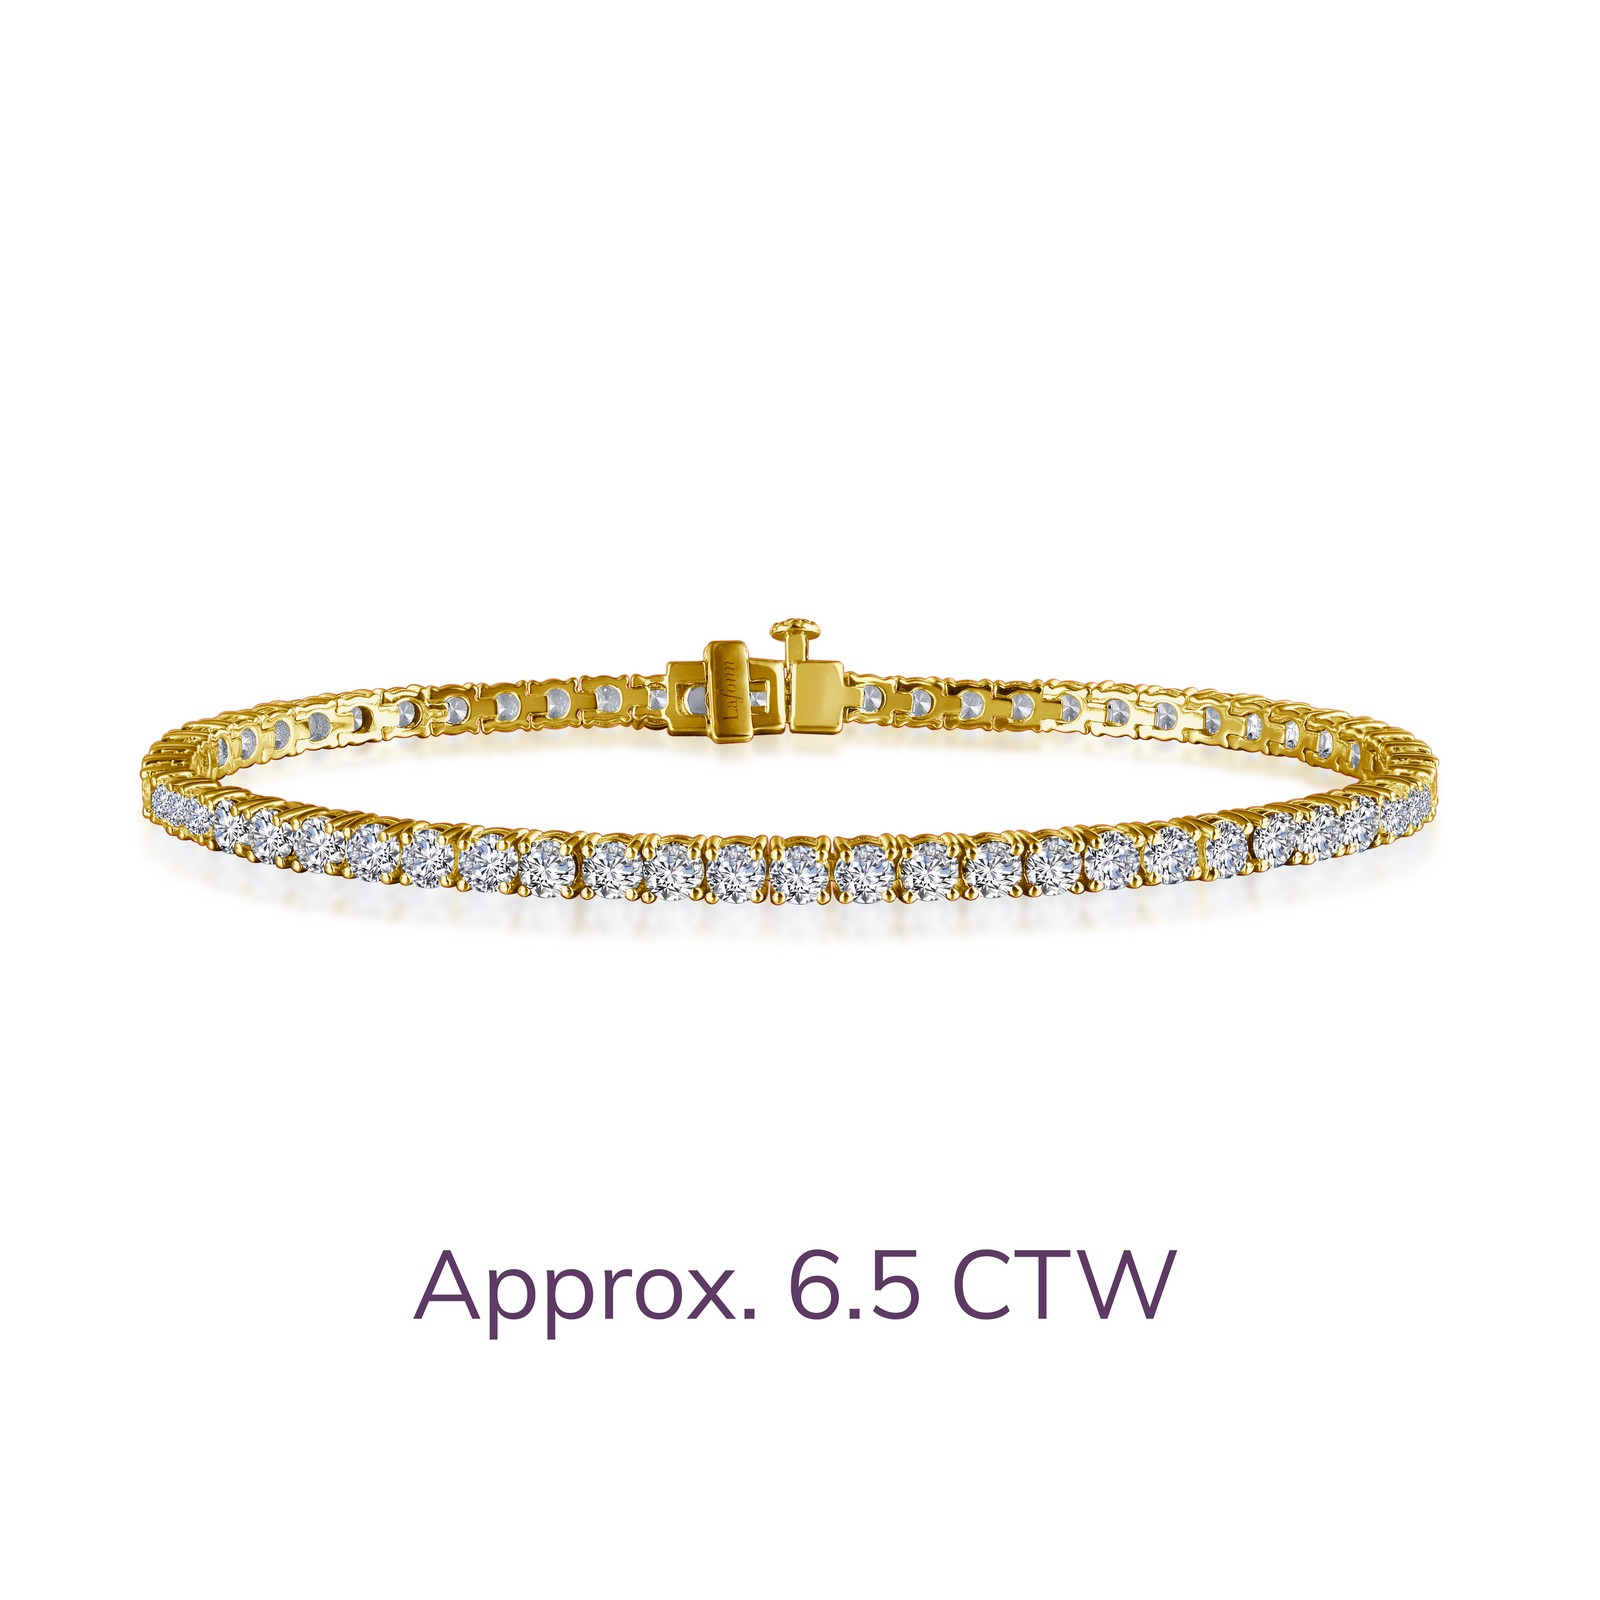 B2001CLG72 - Timeless classics for everyday wear. This tennis bracelet is set with Lafonn's signature Lassaire simulated diamonds in gold plated sterling silver. MSRP: $265 CTTW: 6.27 STONE COUNT: 57